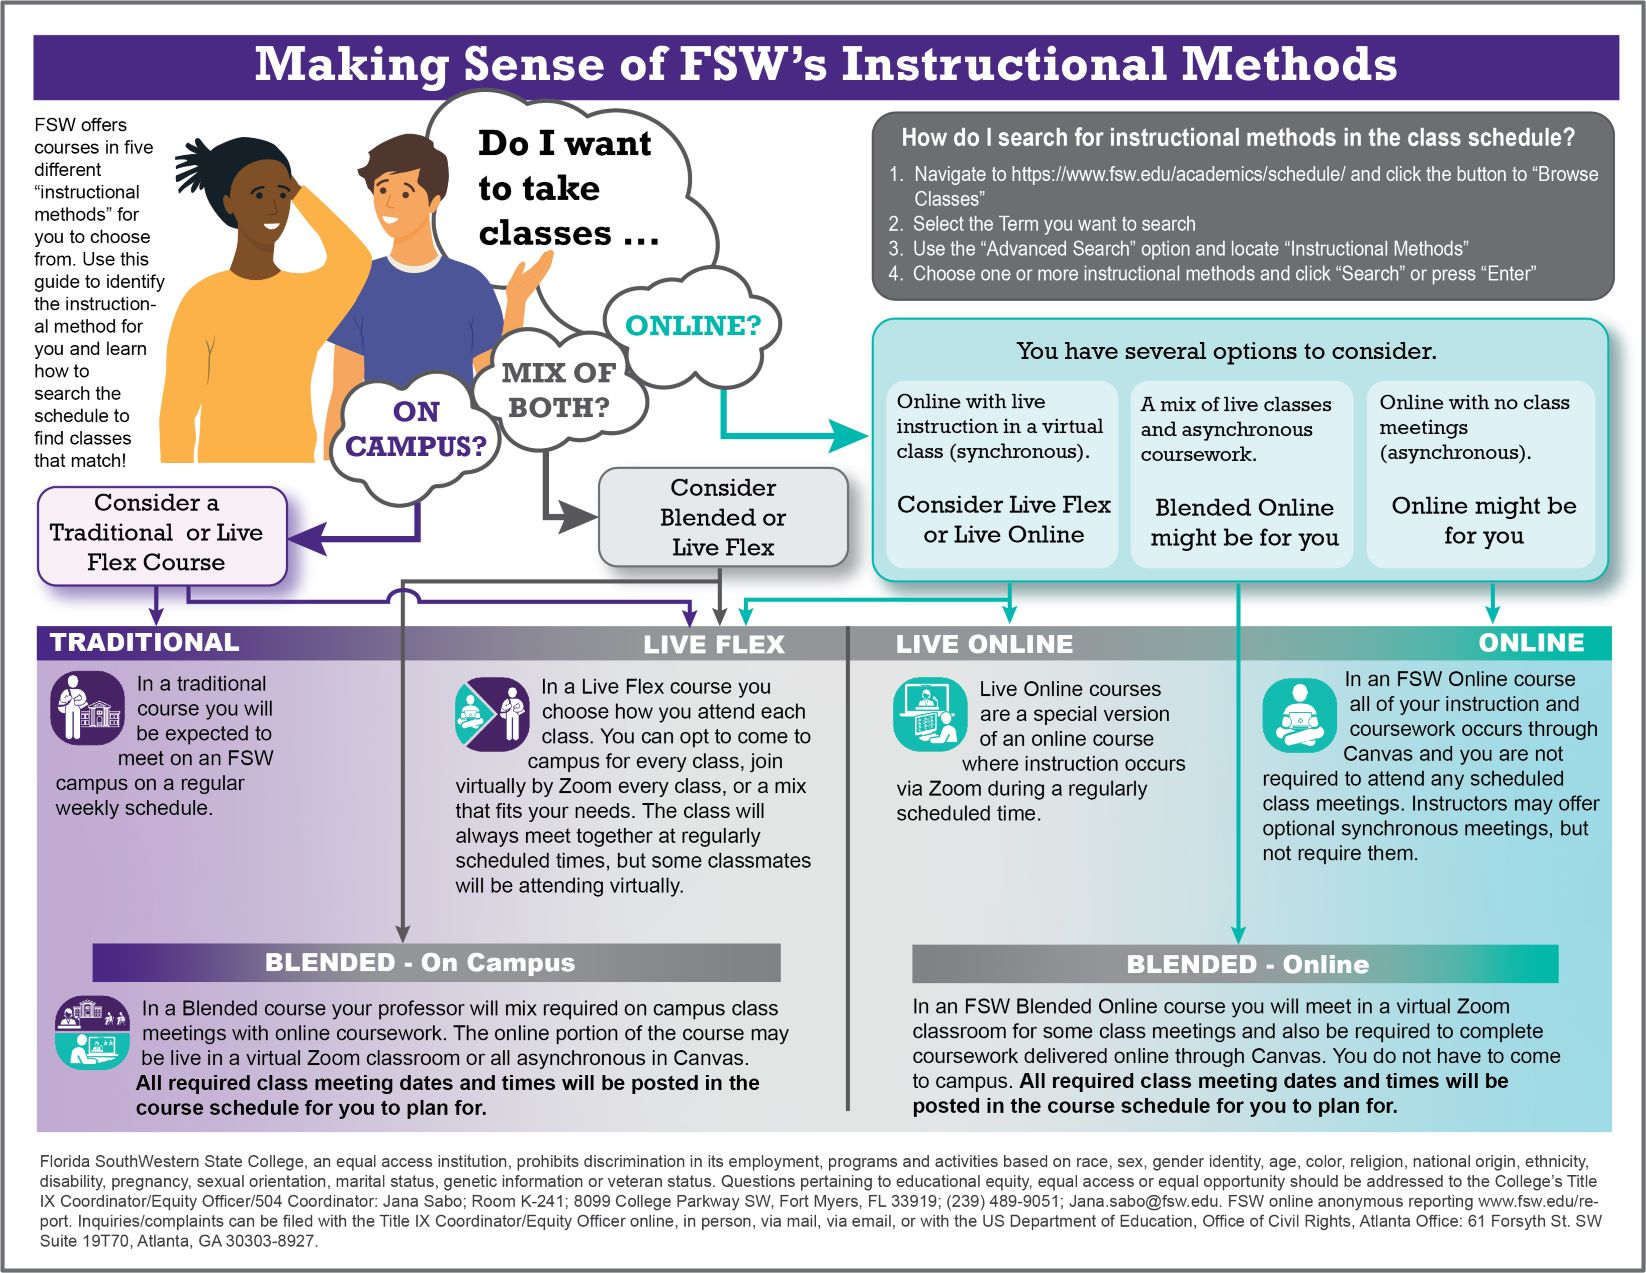 Learn more about the instructional methods for students, PDF.